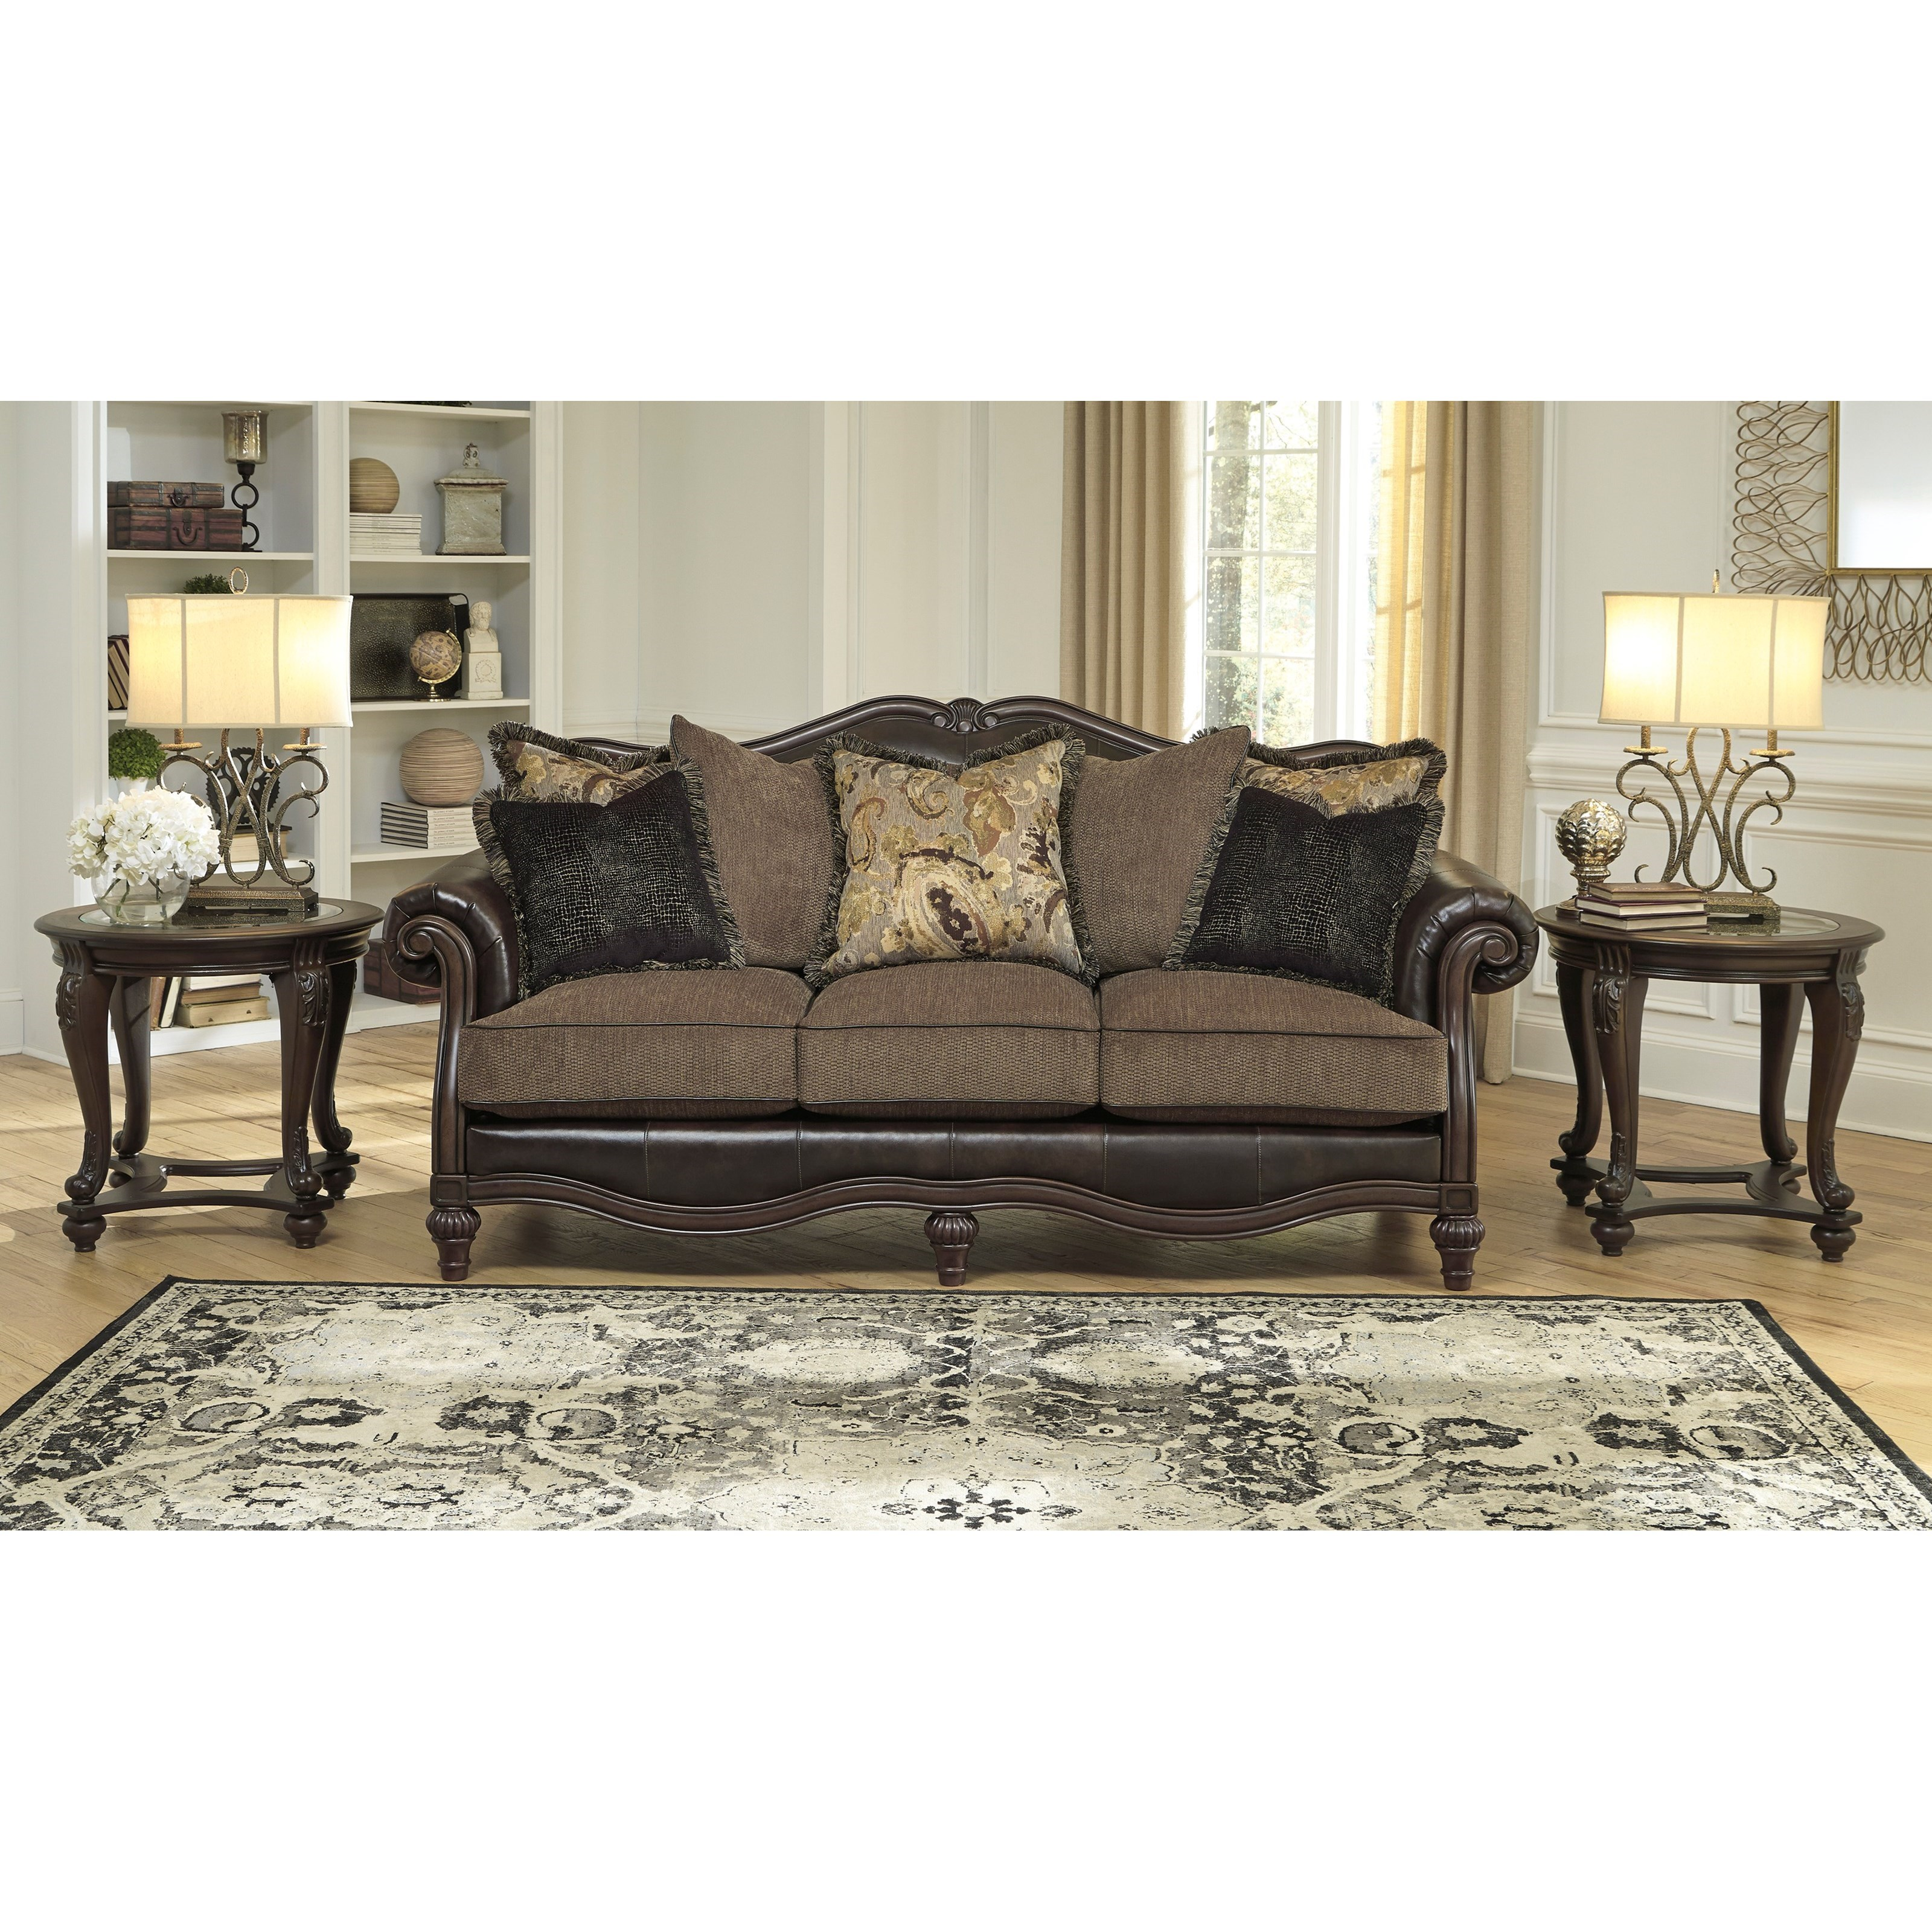 Does Sofa And Loveseat Have To Match: Signature Design By Ashley Winnsboro DuraBlend 5560238